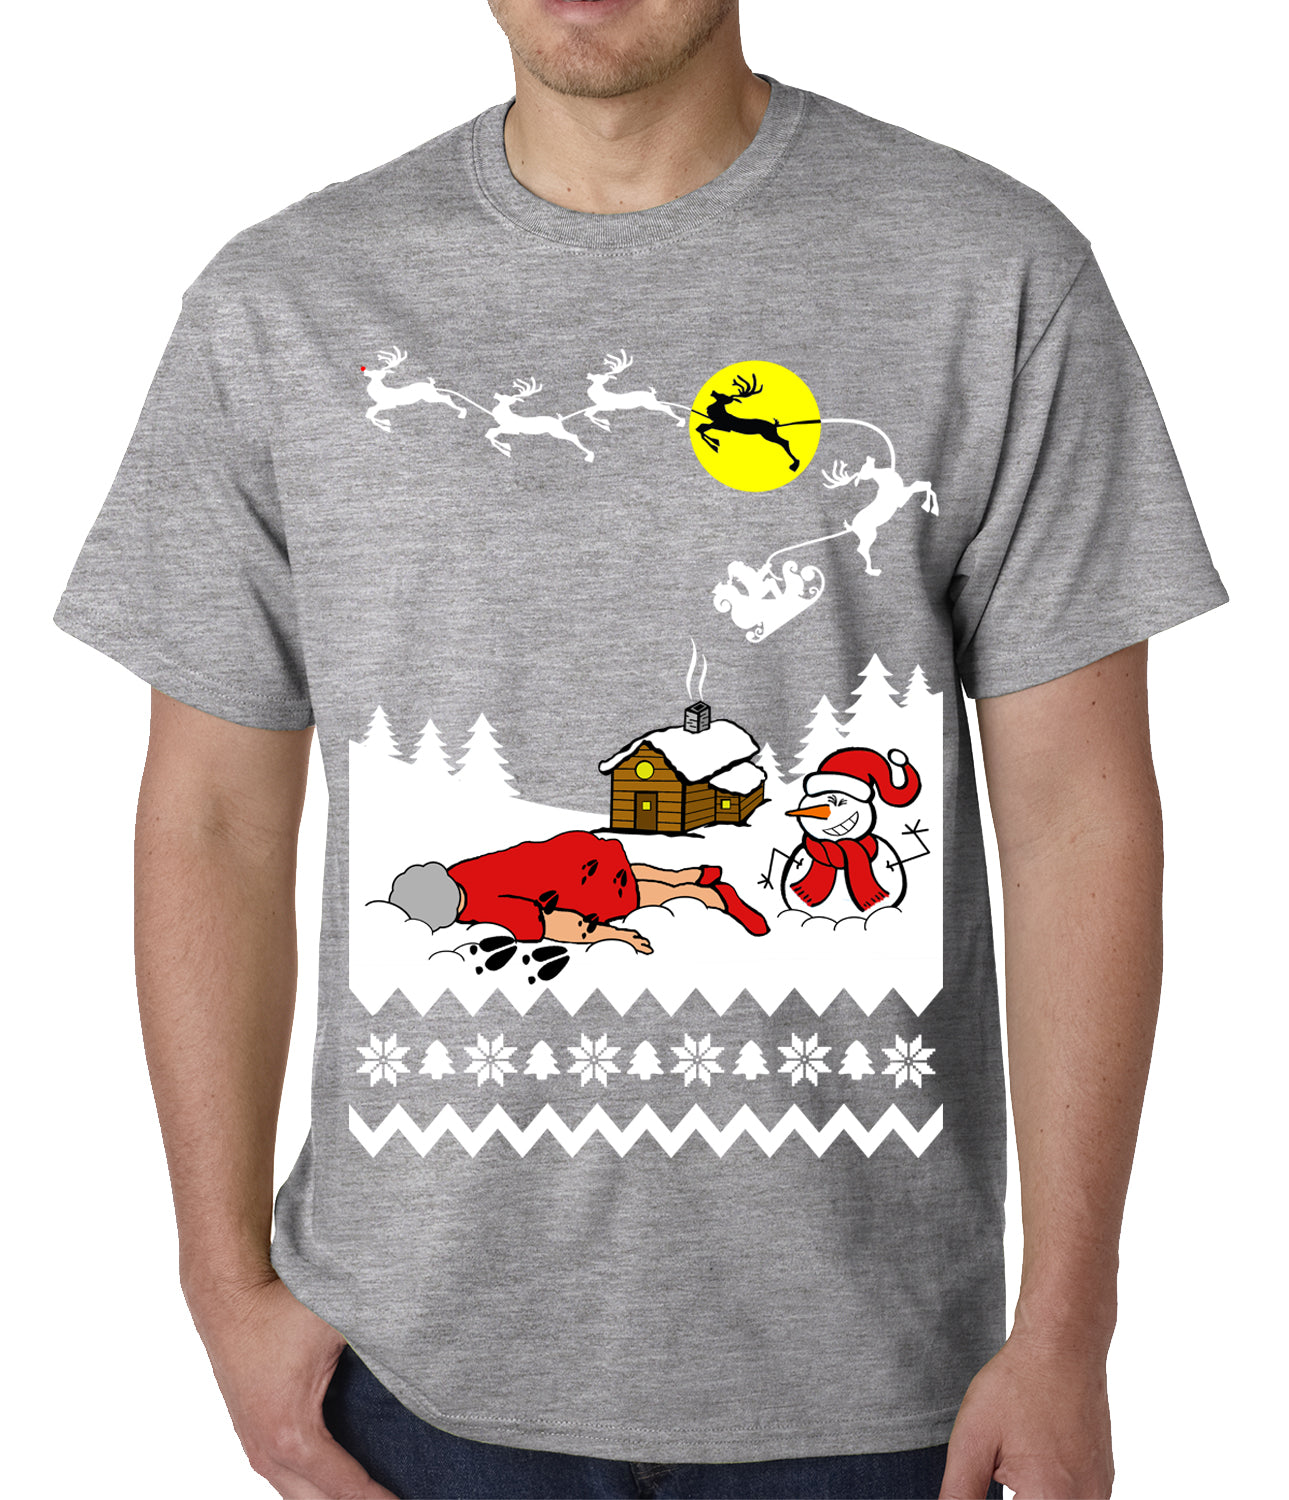 Grandma Got Run Over By A Reindeer - Ugly Christmas Mens T-shirt